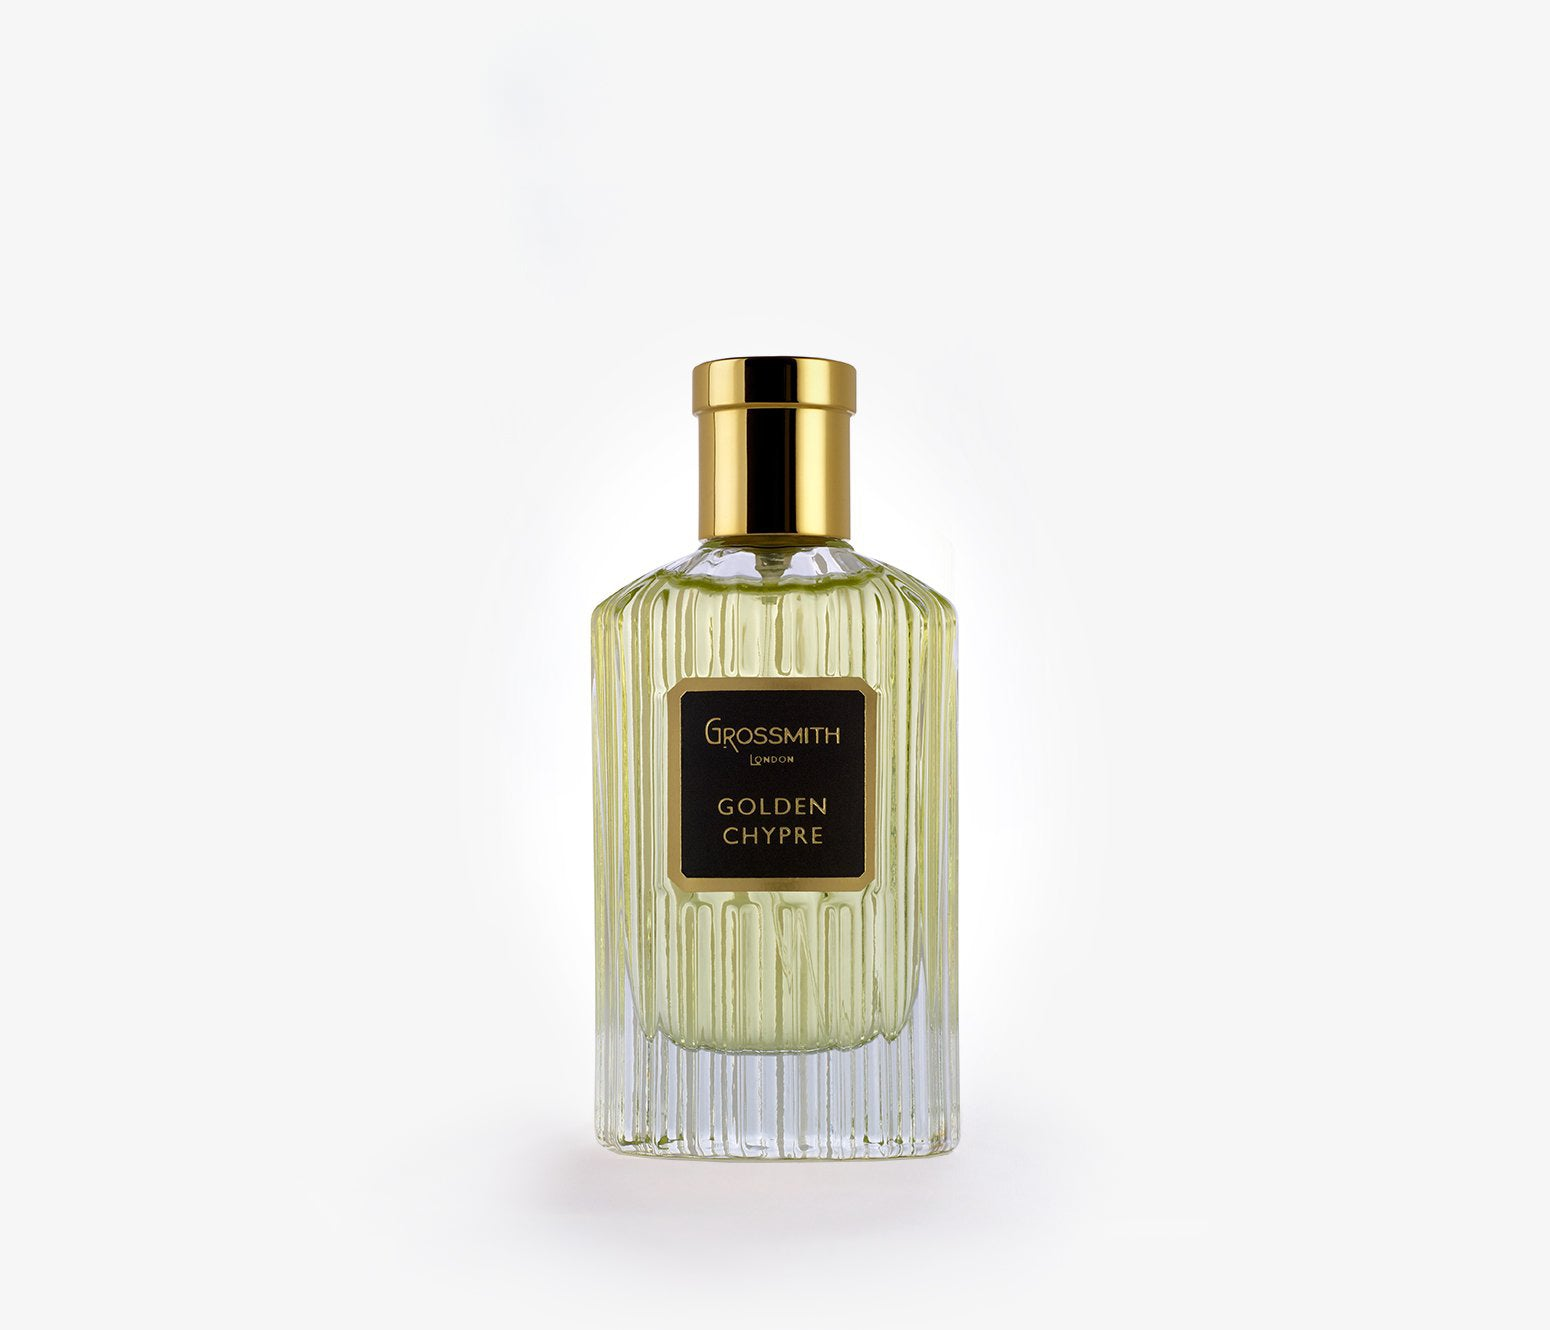 Grossmith London - Golden Chypre - 50ml - JJG5633 - product image - Fragrance - Les Senteurs